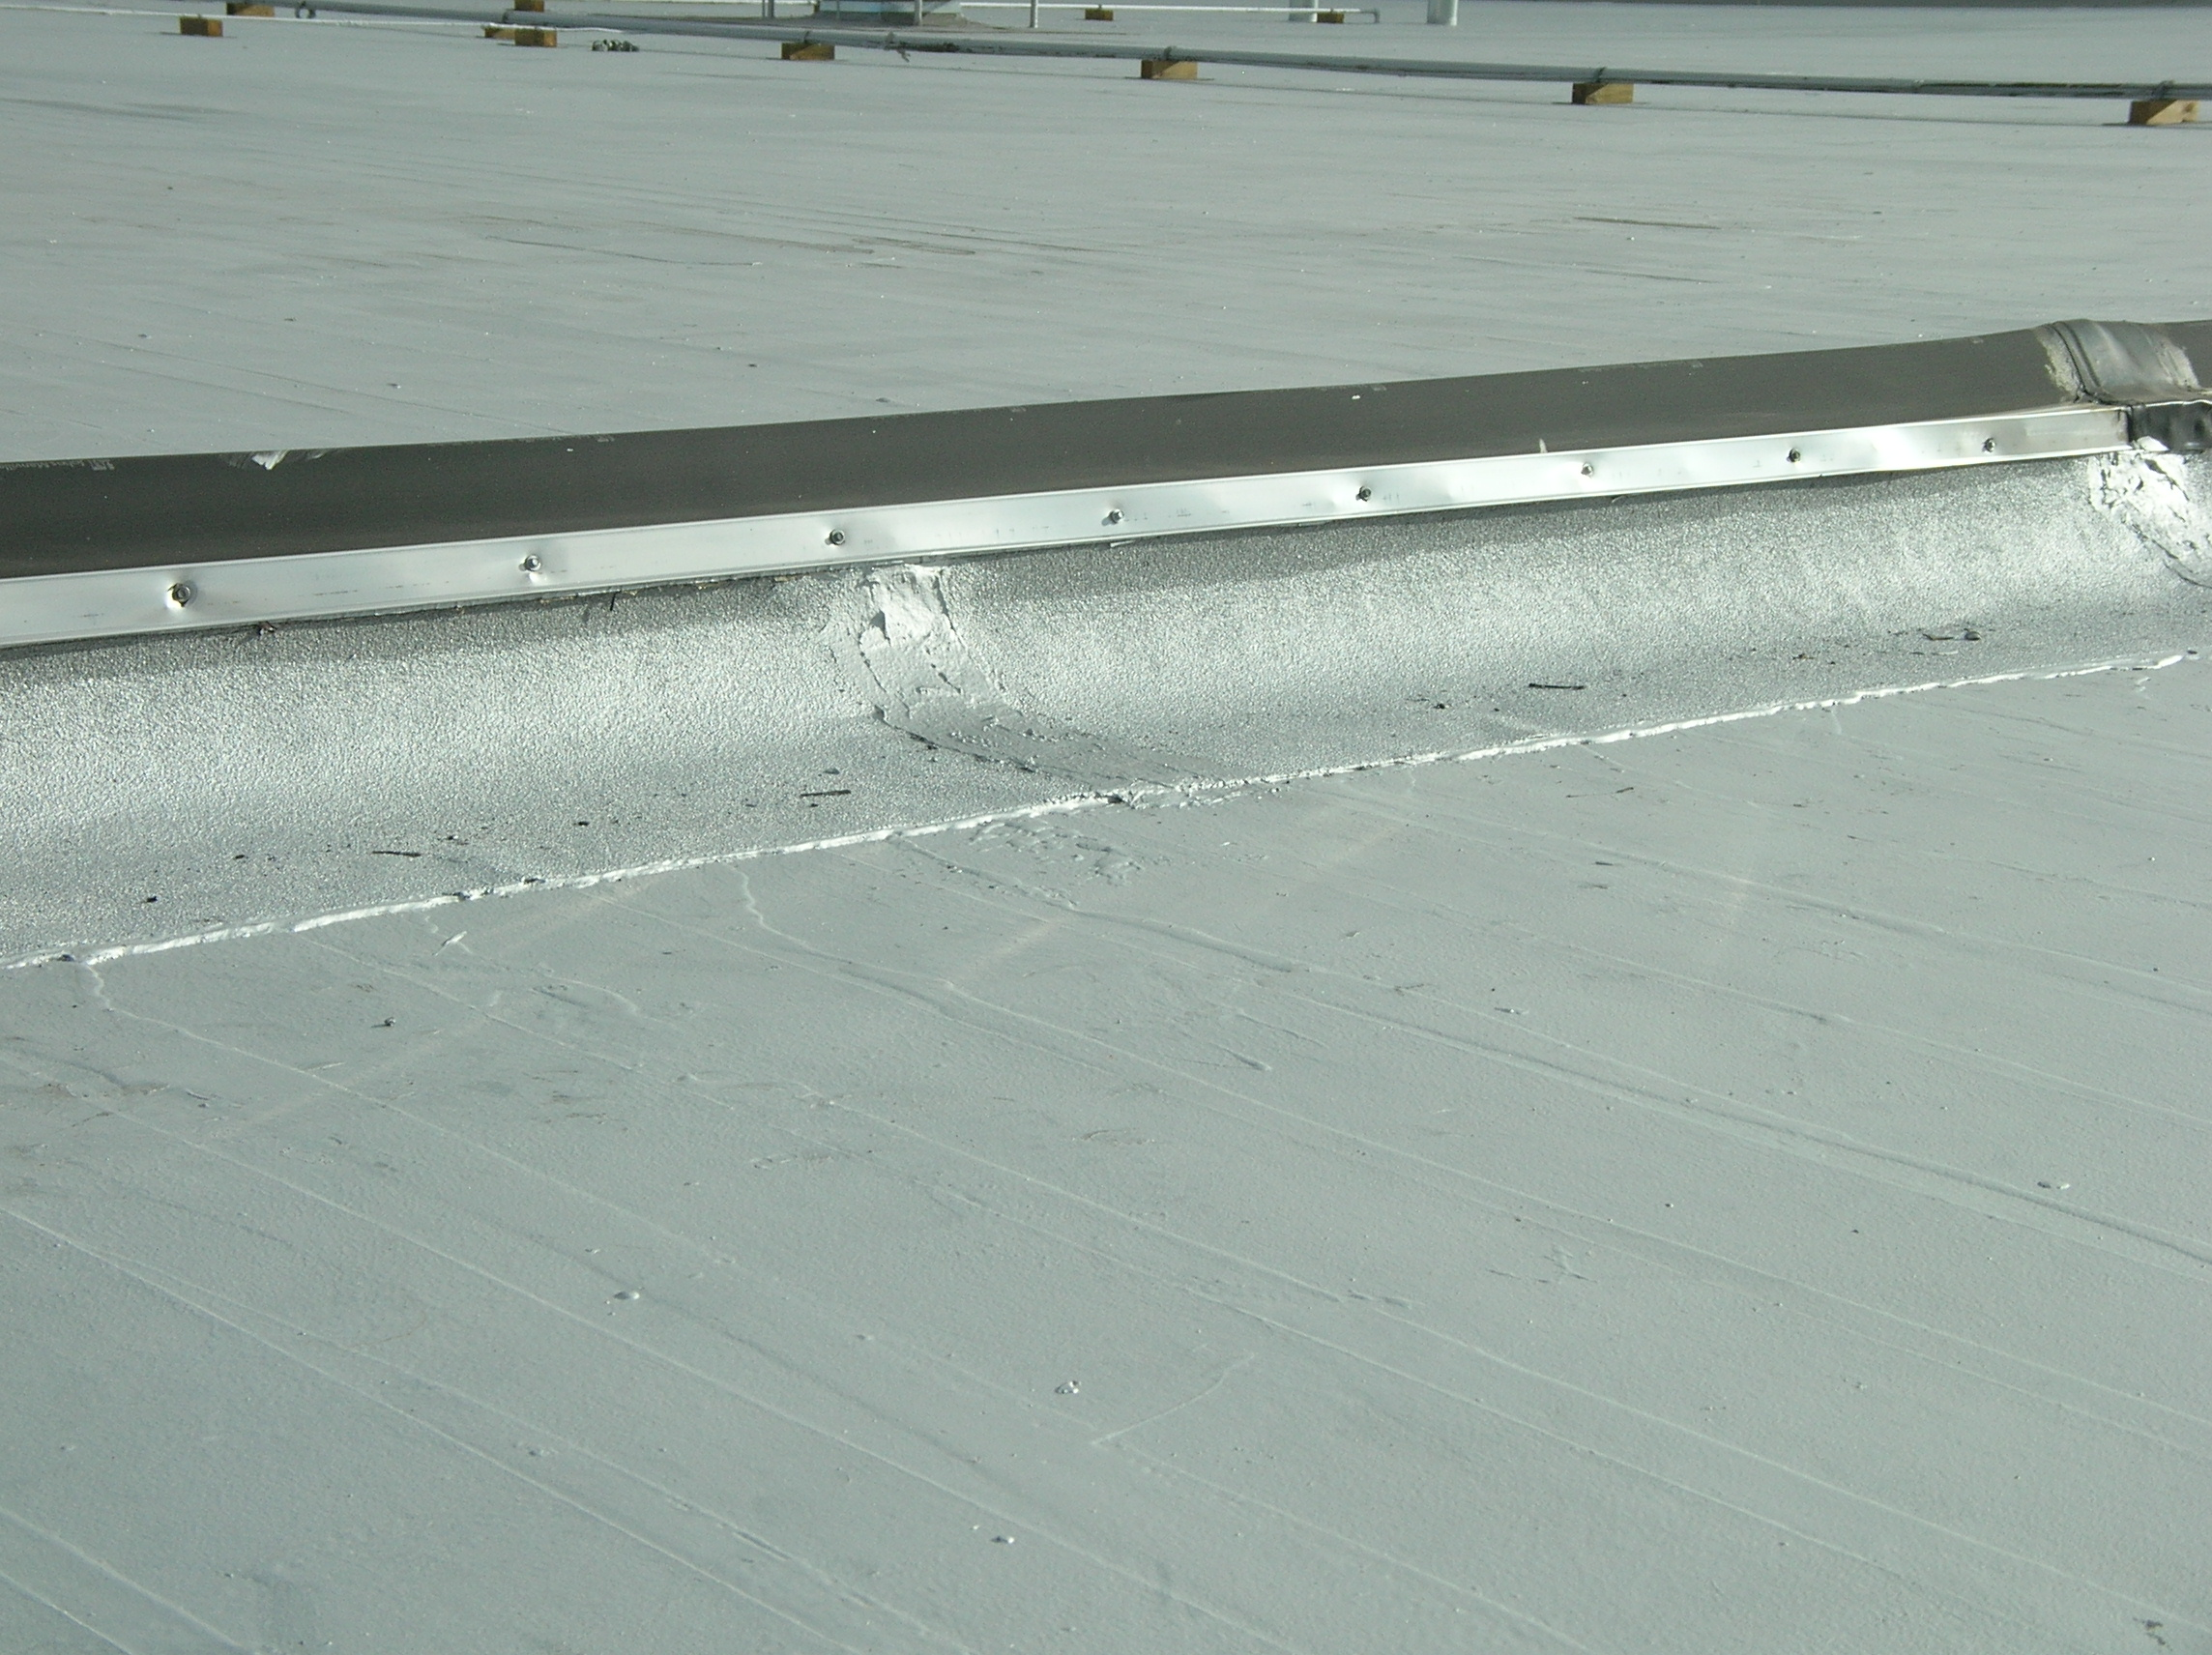 View of a curbed expansion joint between two roof sections.